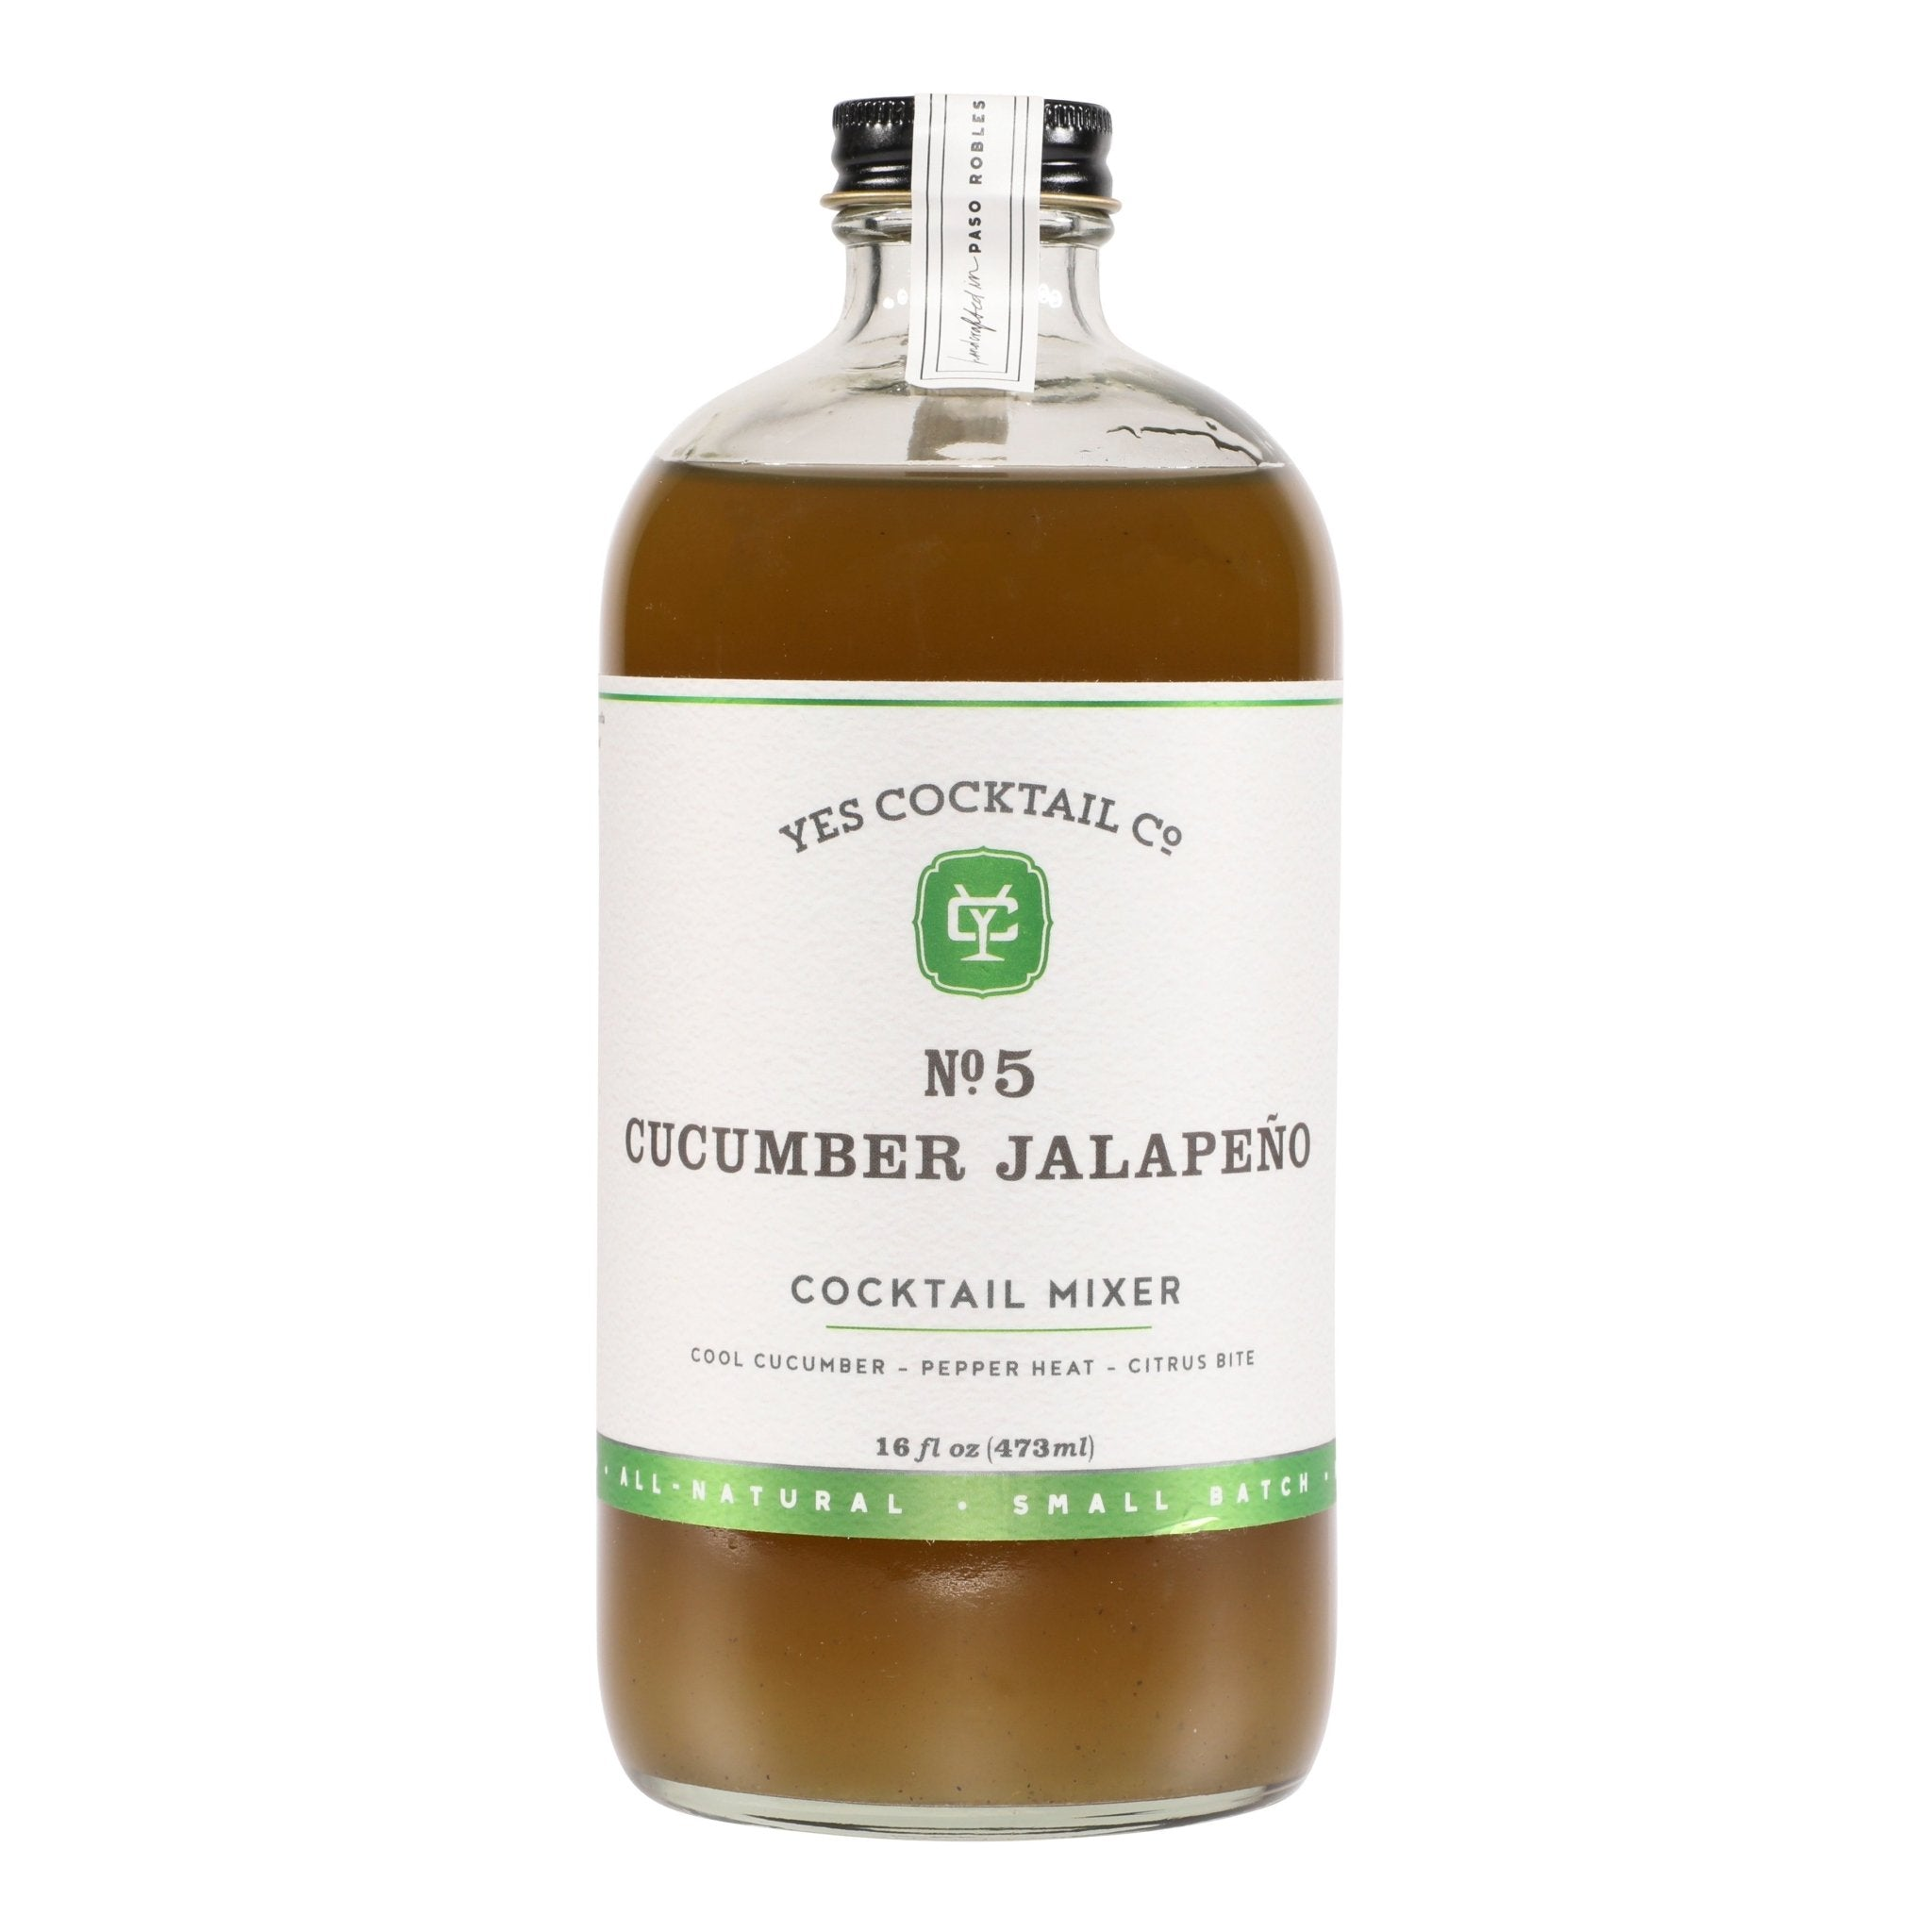 Craft Cocktail Mixer - Cucumber Jalapeño - Yes Cocktail Co -Freehand Market